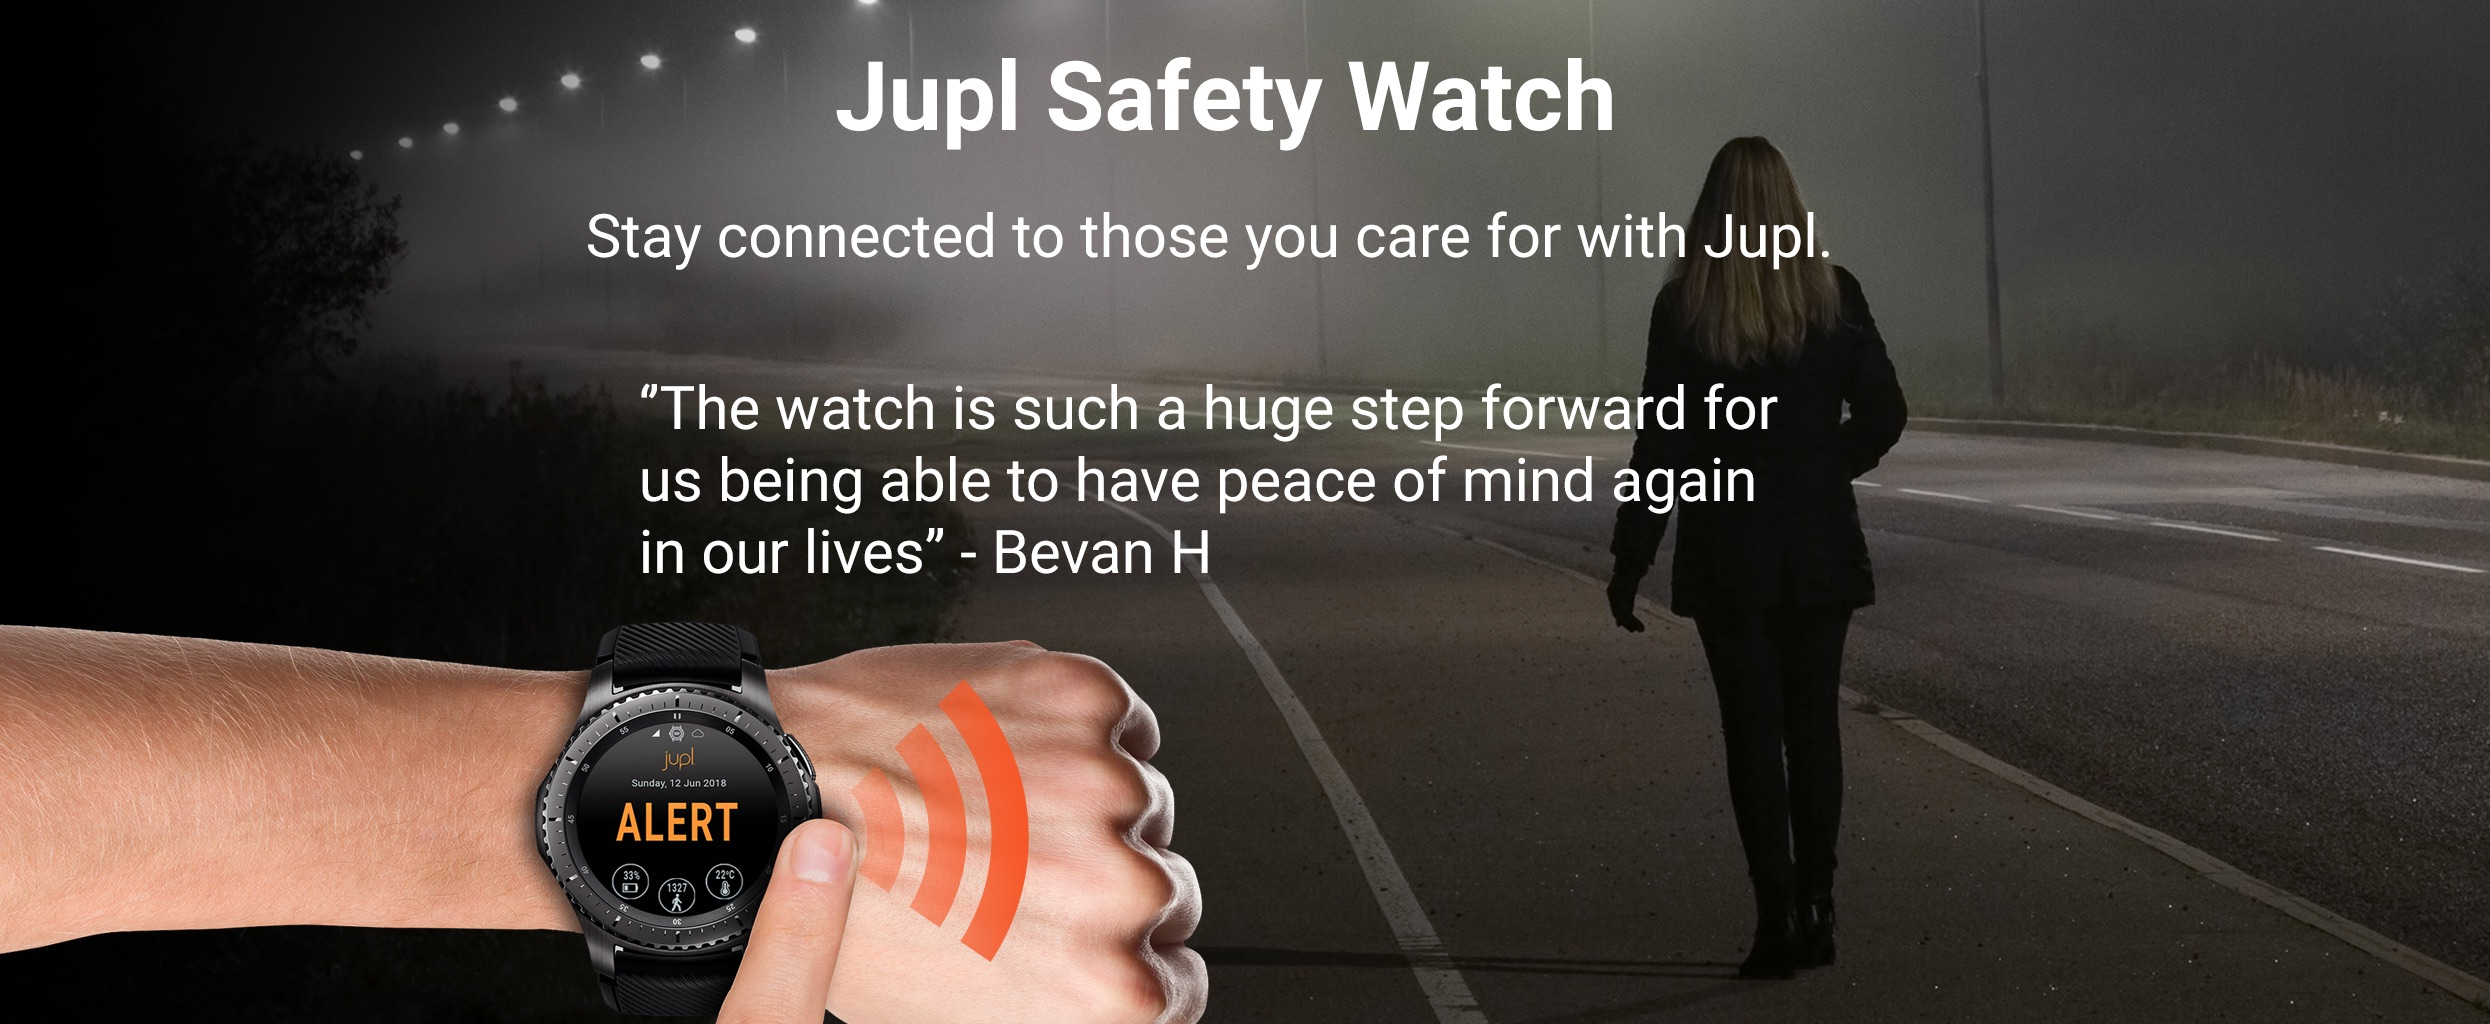 Jupl Saftey Watch New.jpg